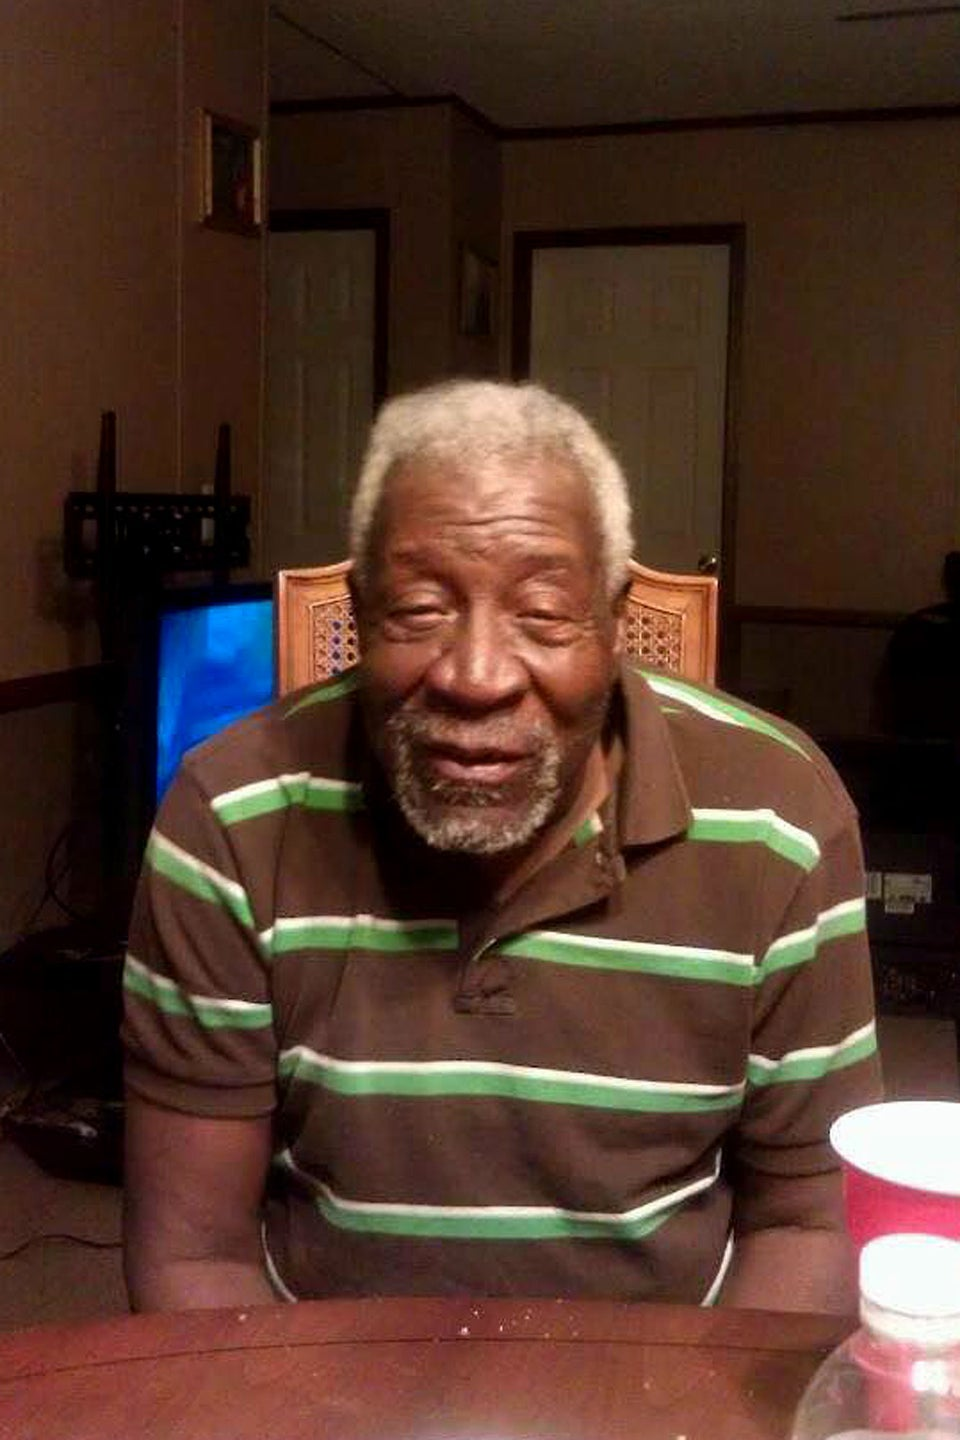 Robert Godwin, Grandfather Killed In Facebook Video, Honored By Family